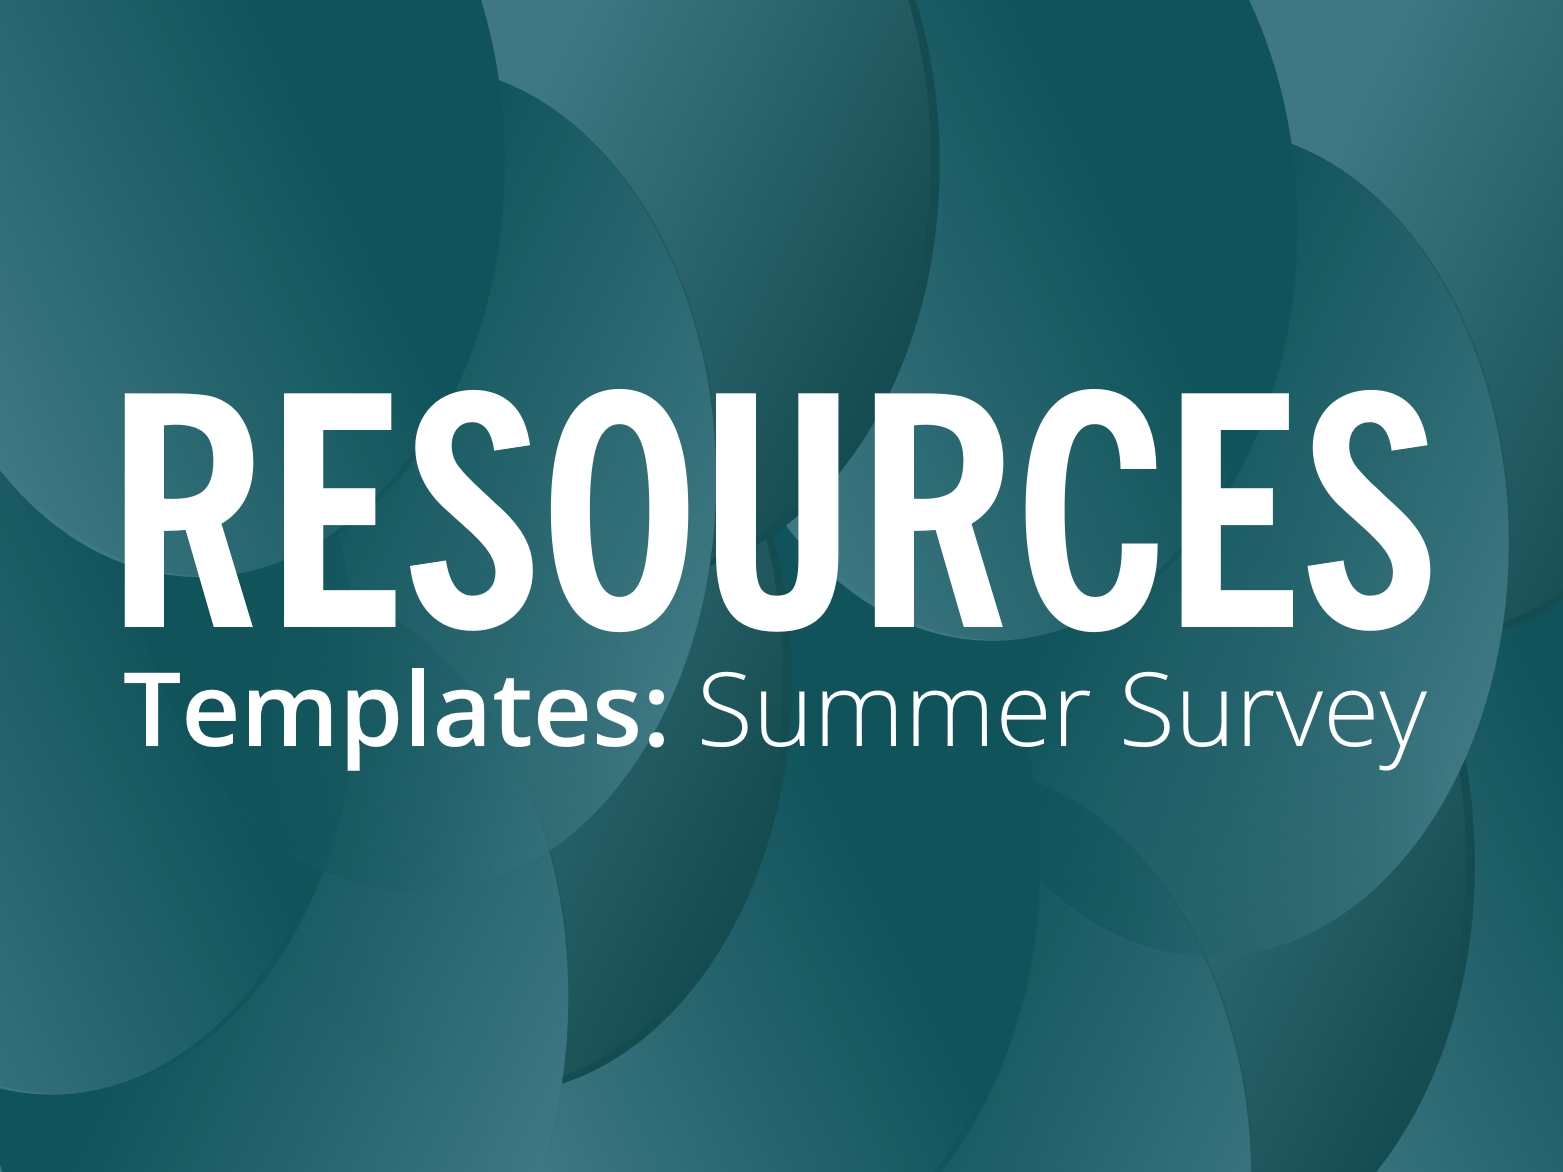 RESOURCES: Summer Survey